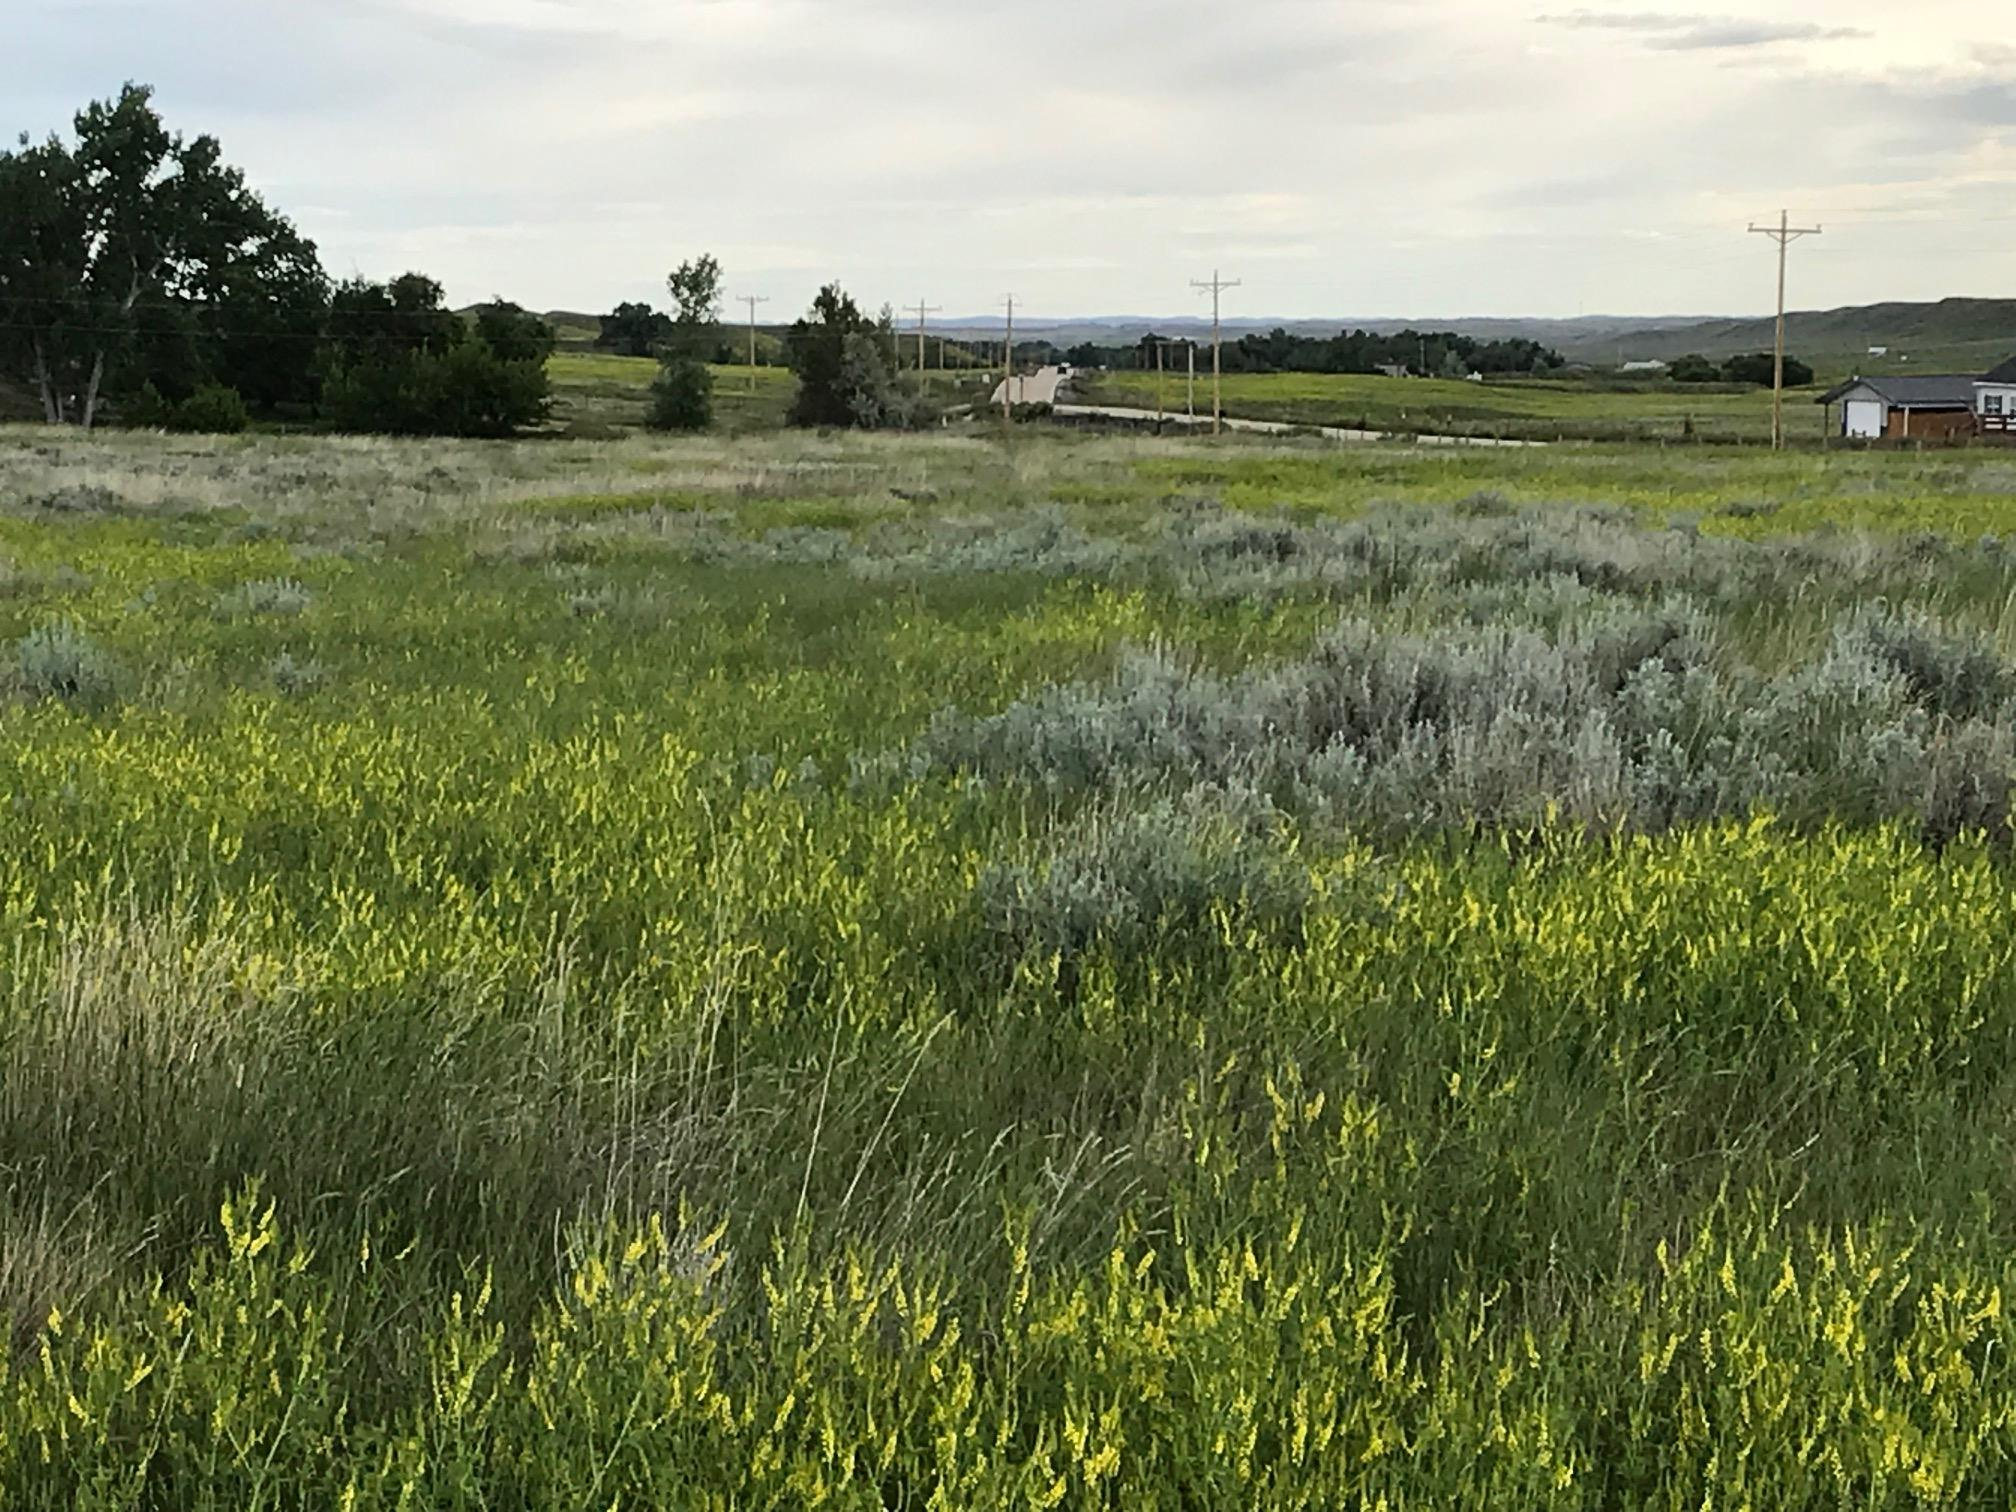 Lot 18 TBD, Buffalo, Wyoming 82834, ,Building Site,For Sale,TBD,17-729